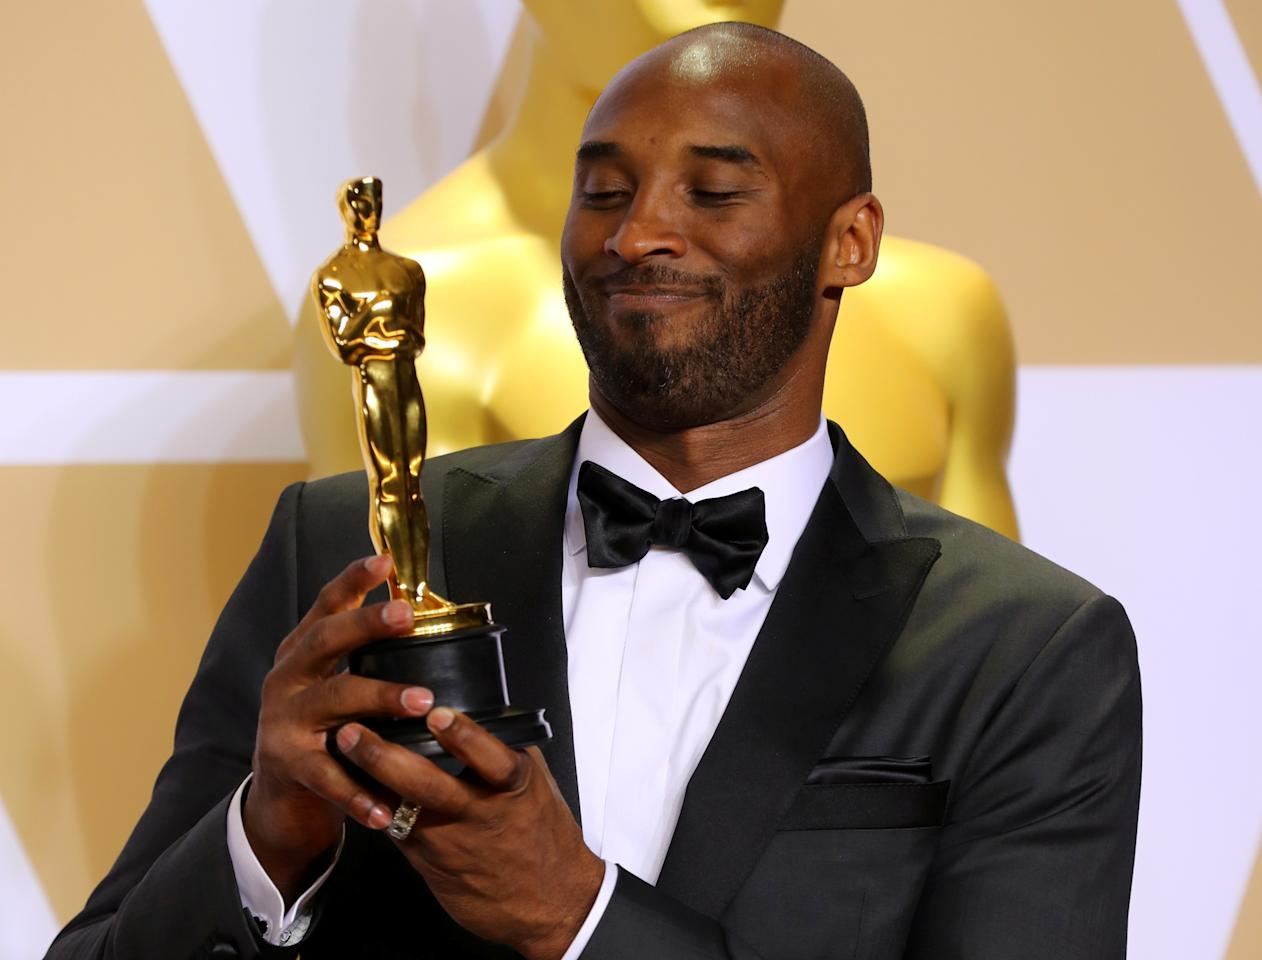 "90th Academy Awards - Oscars Backstage - Hollywood, California, U.S., 04/03/2018 - Kobe Bryant with Best Animated Short Film Award for ""Dear Basketball"". REUTERS/Mike Blake     TPX IMAGES OF THE DAY"